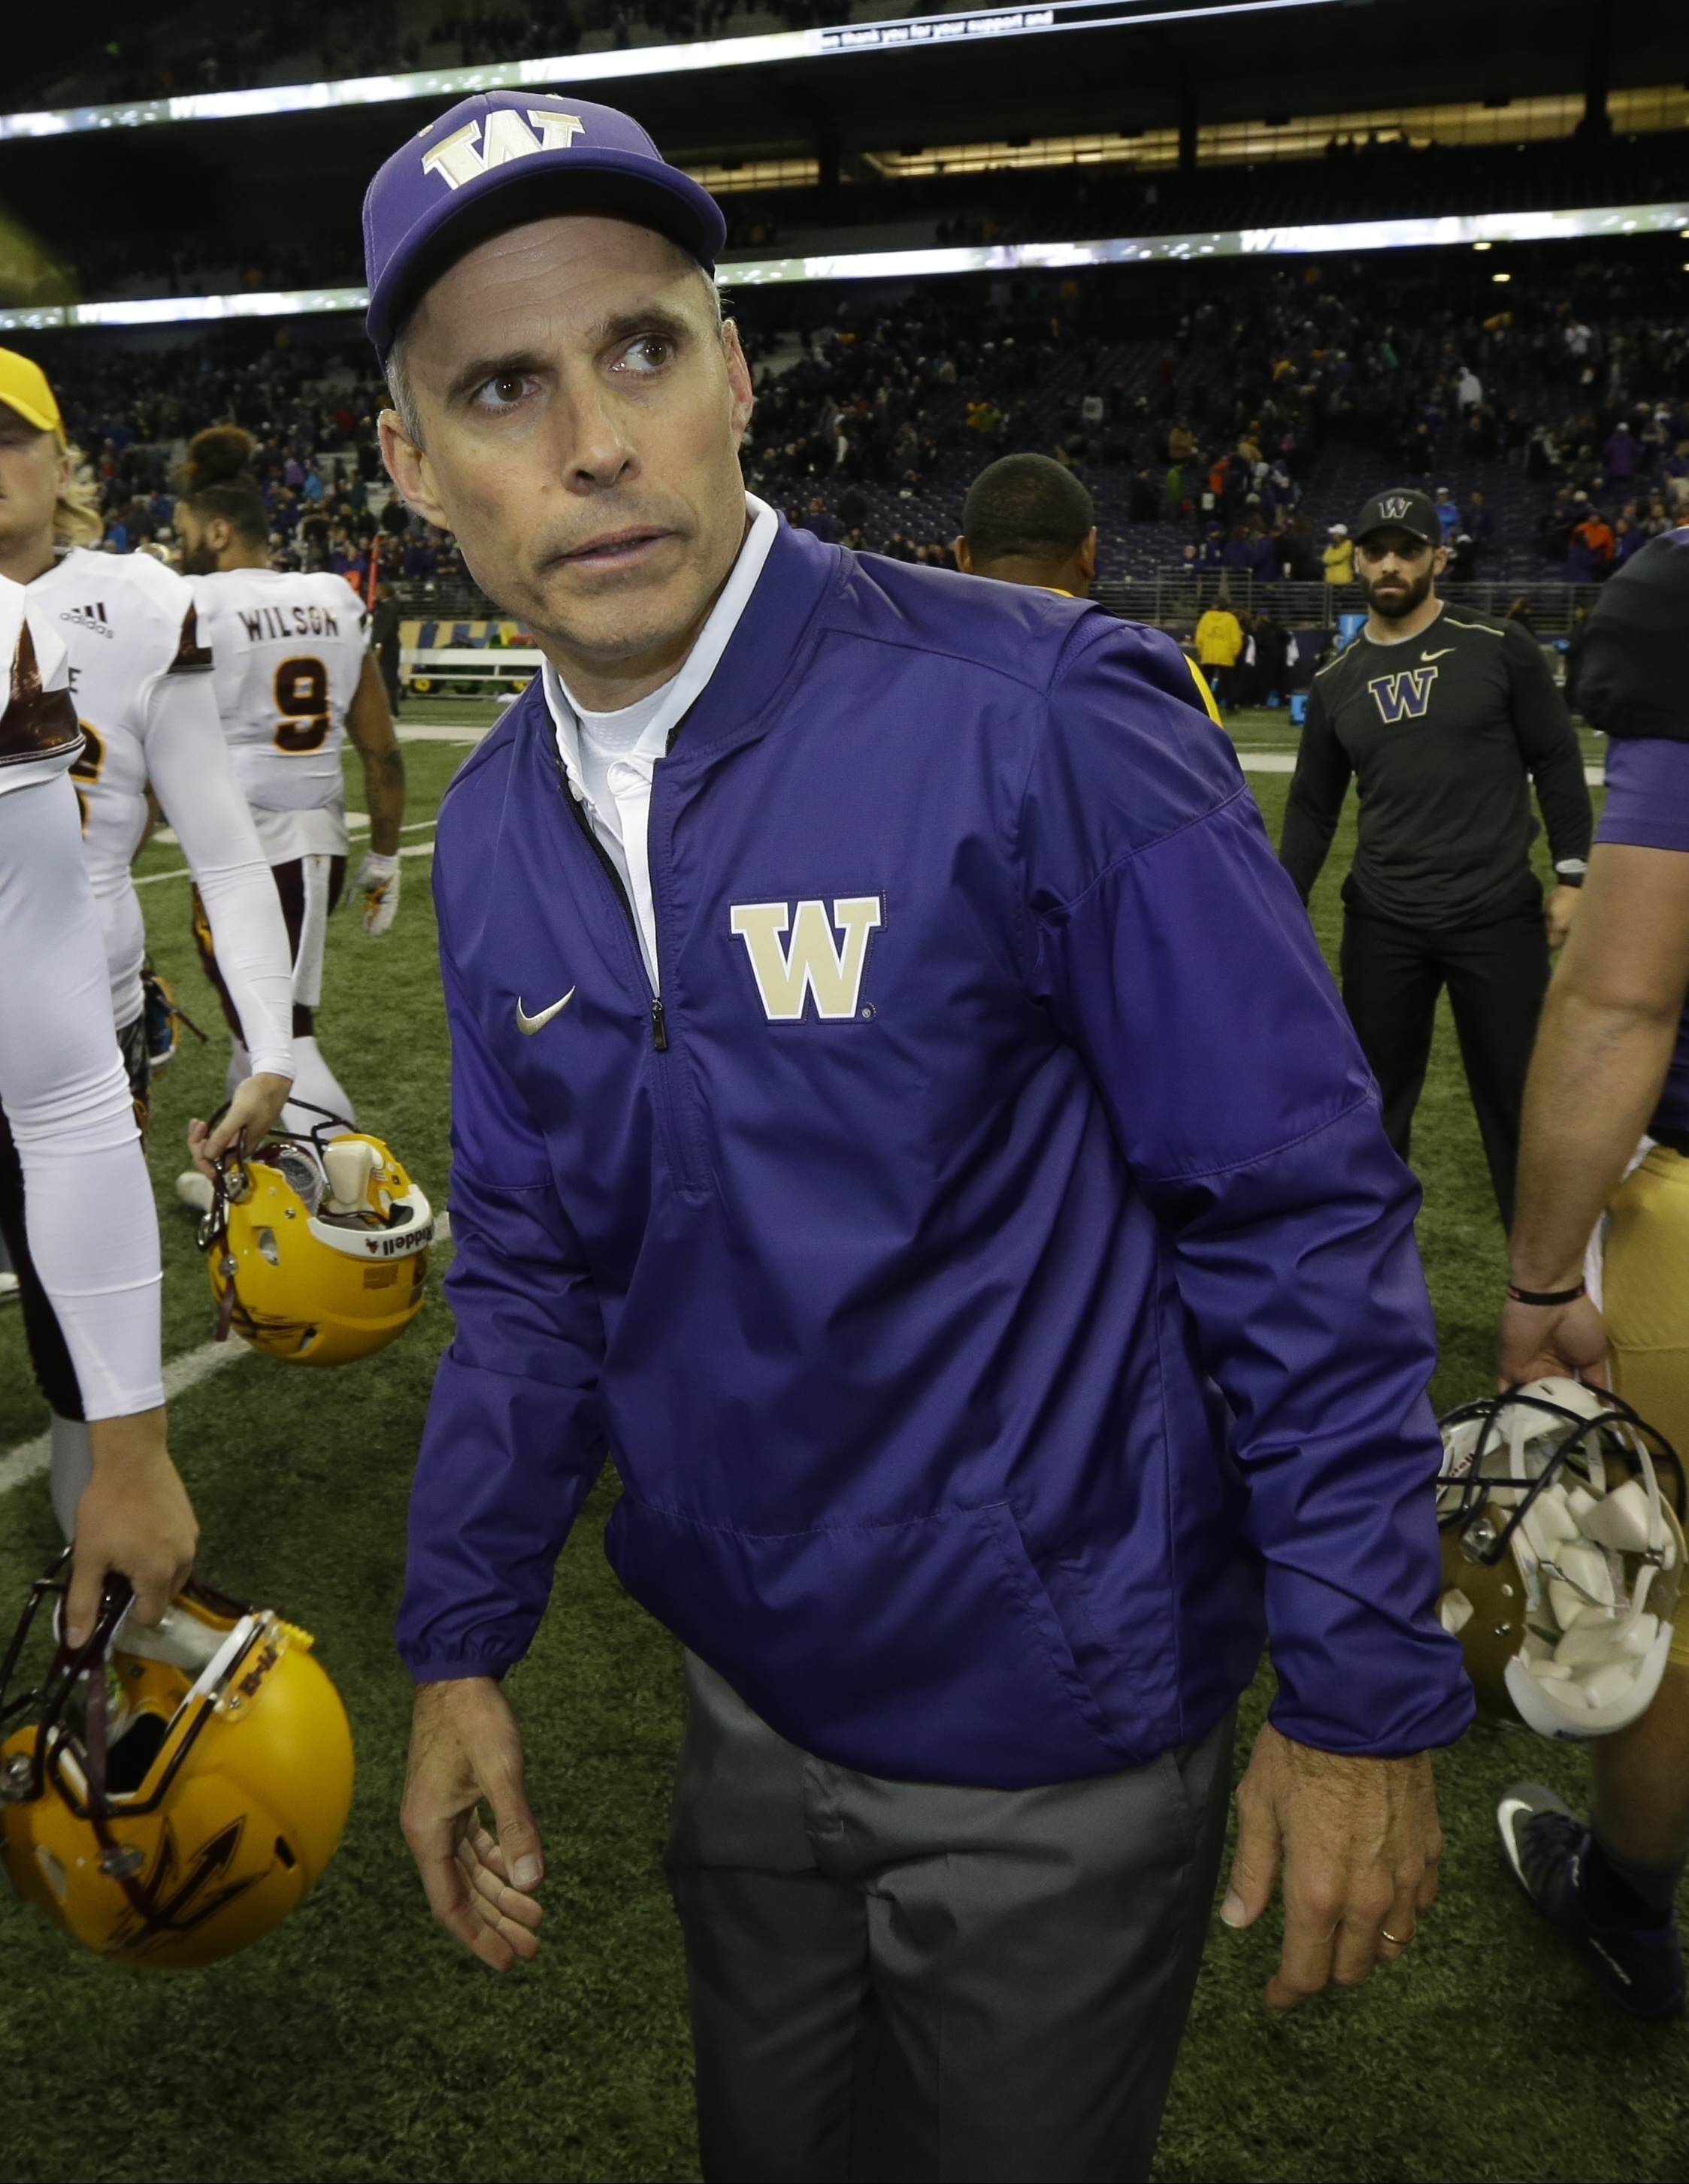 FILE - In this Nov. 19, 2016, file photo, Washington head coach Chris Petersen walks on the field after an NCAA college football game against Arizona State, in Seattle. Washington is two victories away from its first Pac-12 championship since 2000 and may